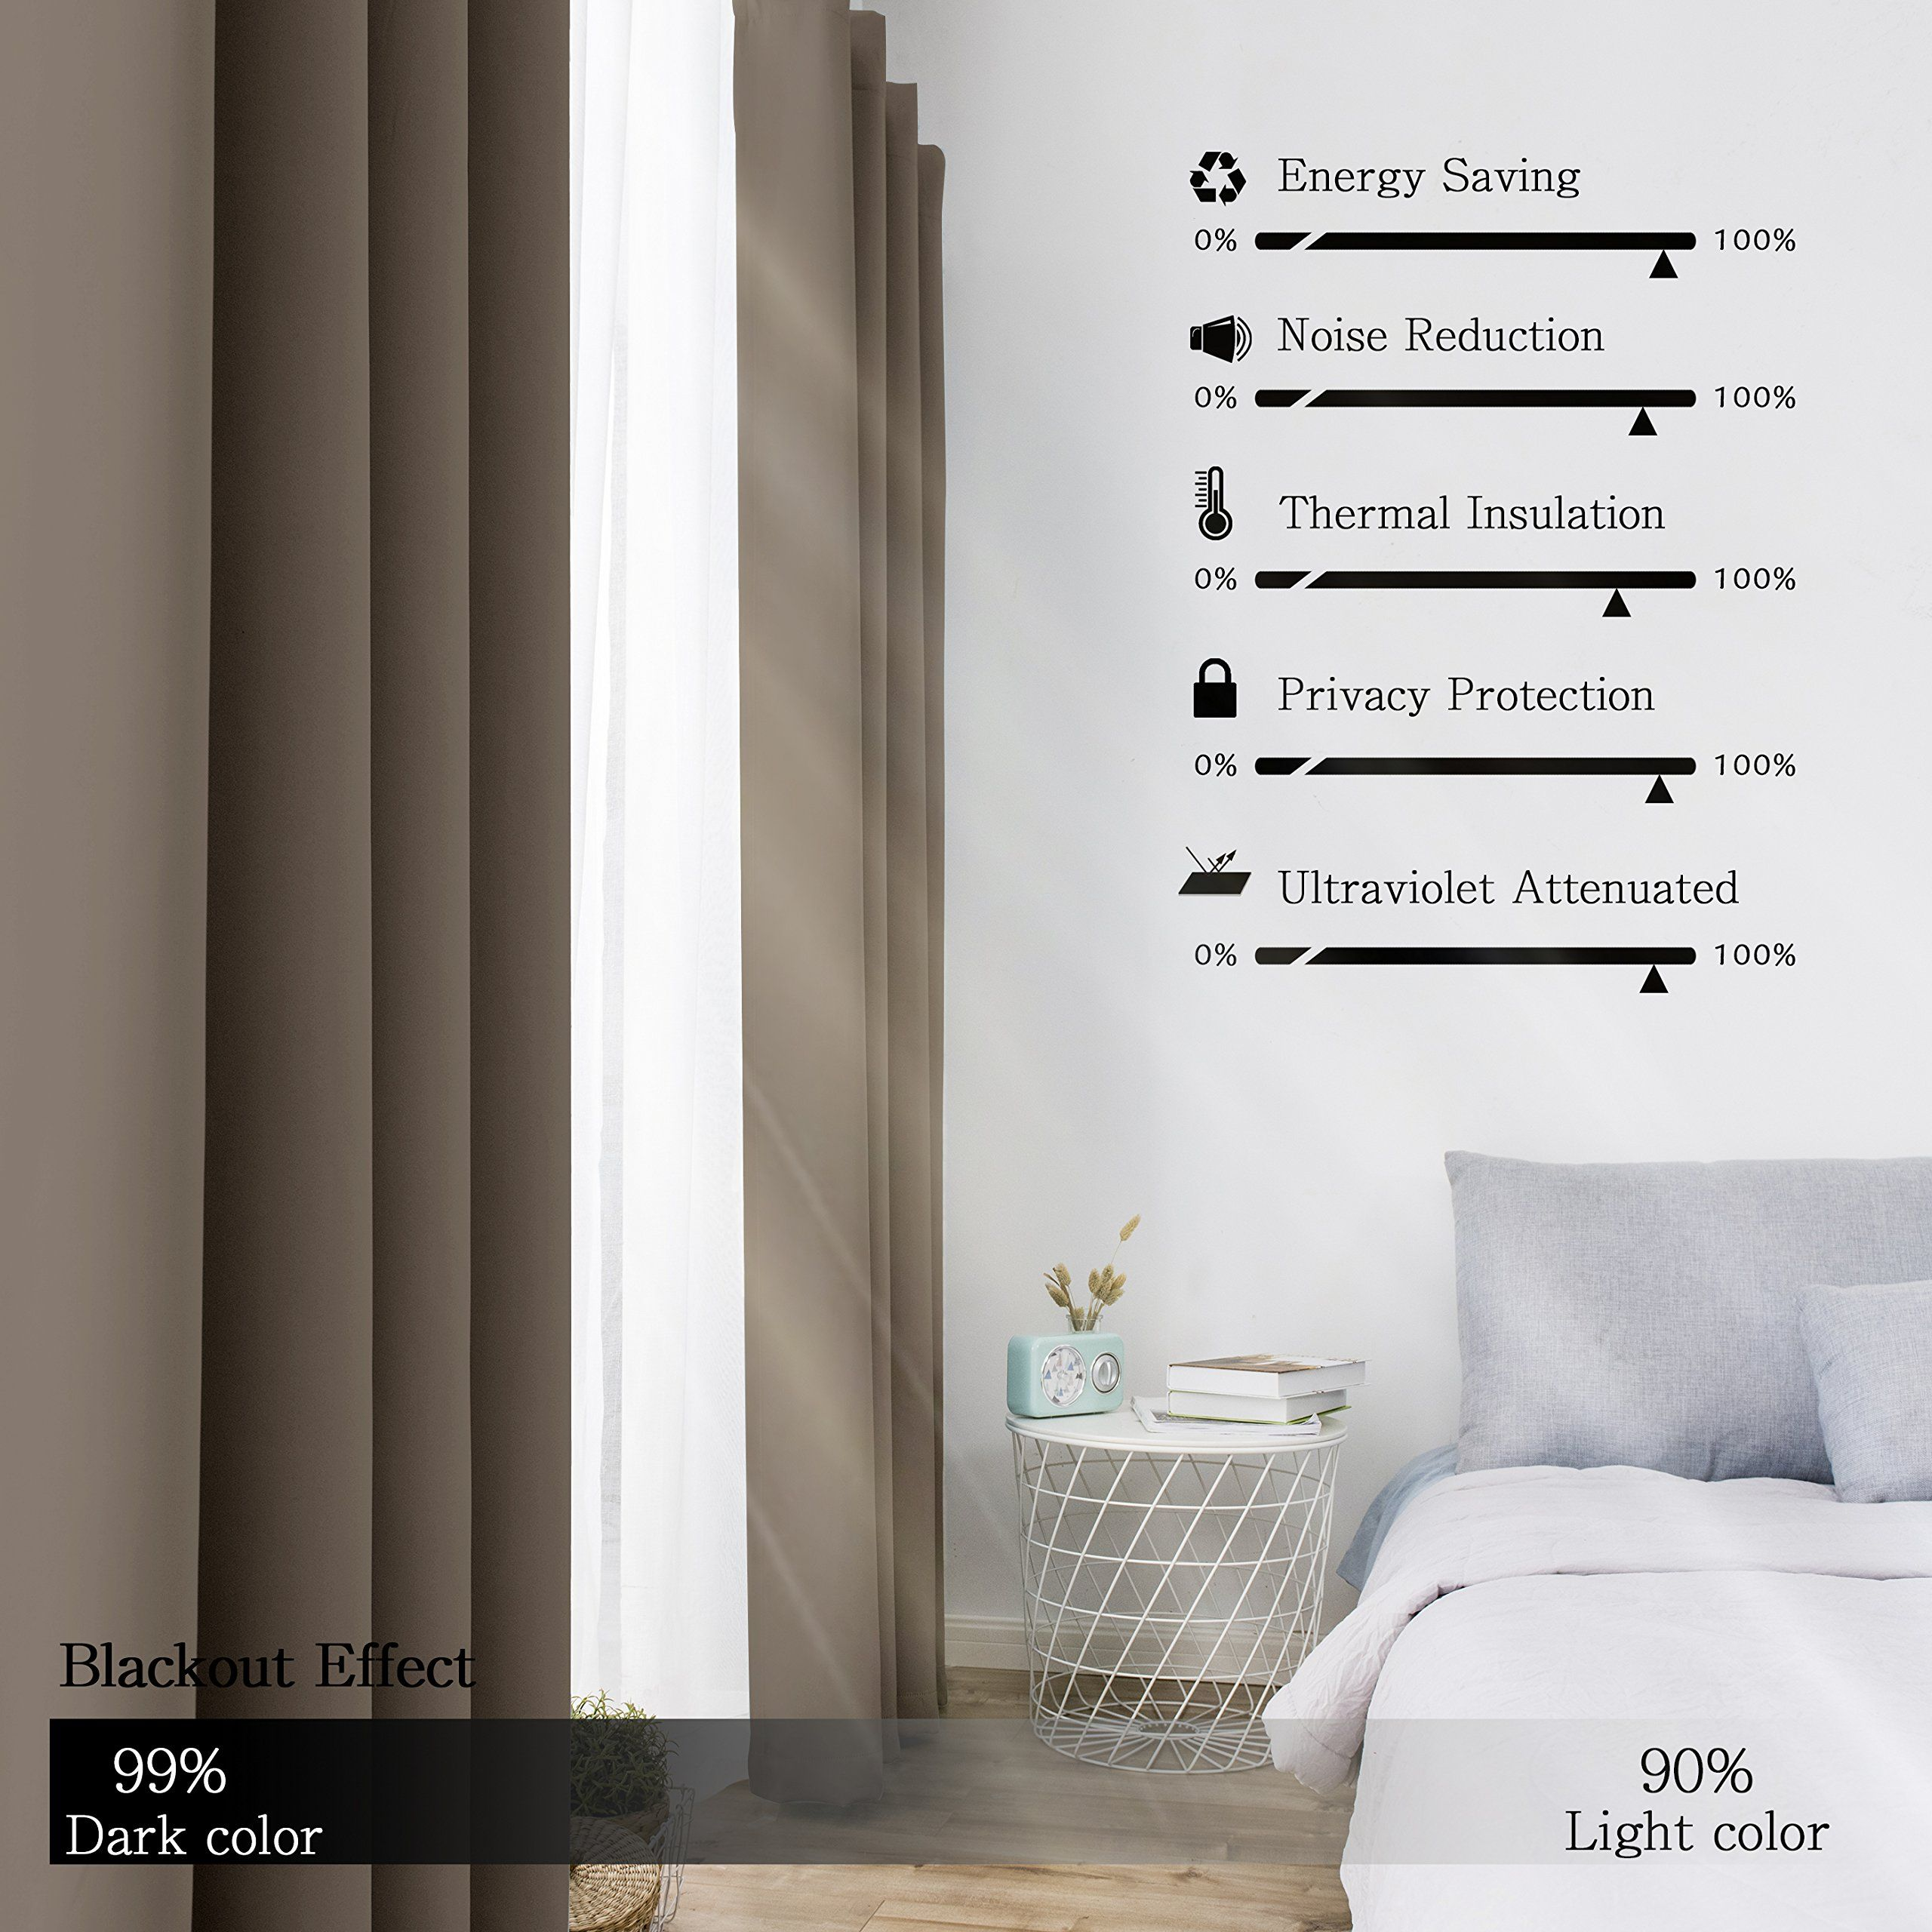 Wontex Blackout Curtains Room Darkening Thermal Insulated With Grommet Curtains For Bedroom 52 X 84 Inch Taupe 2 Curtains Living Room Curtains Grommet Curtains